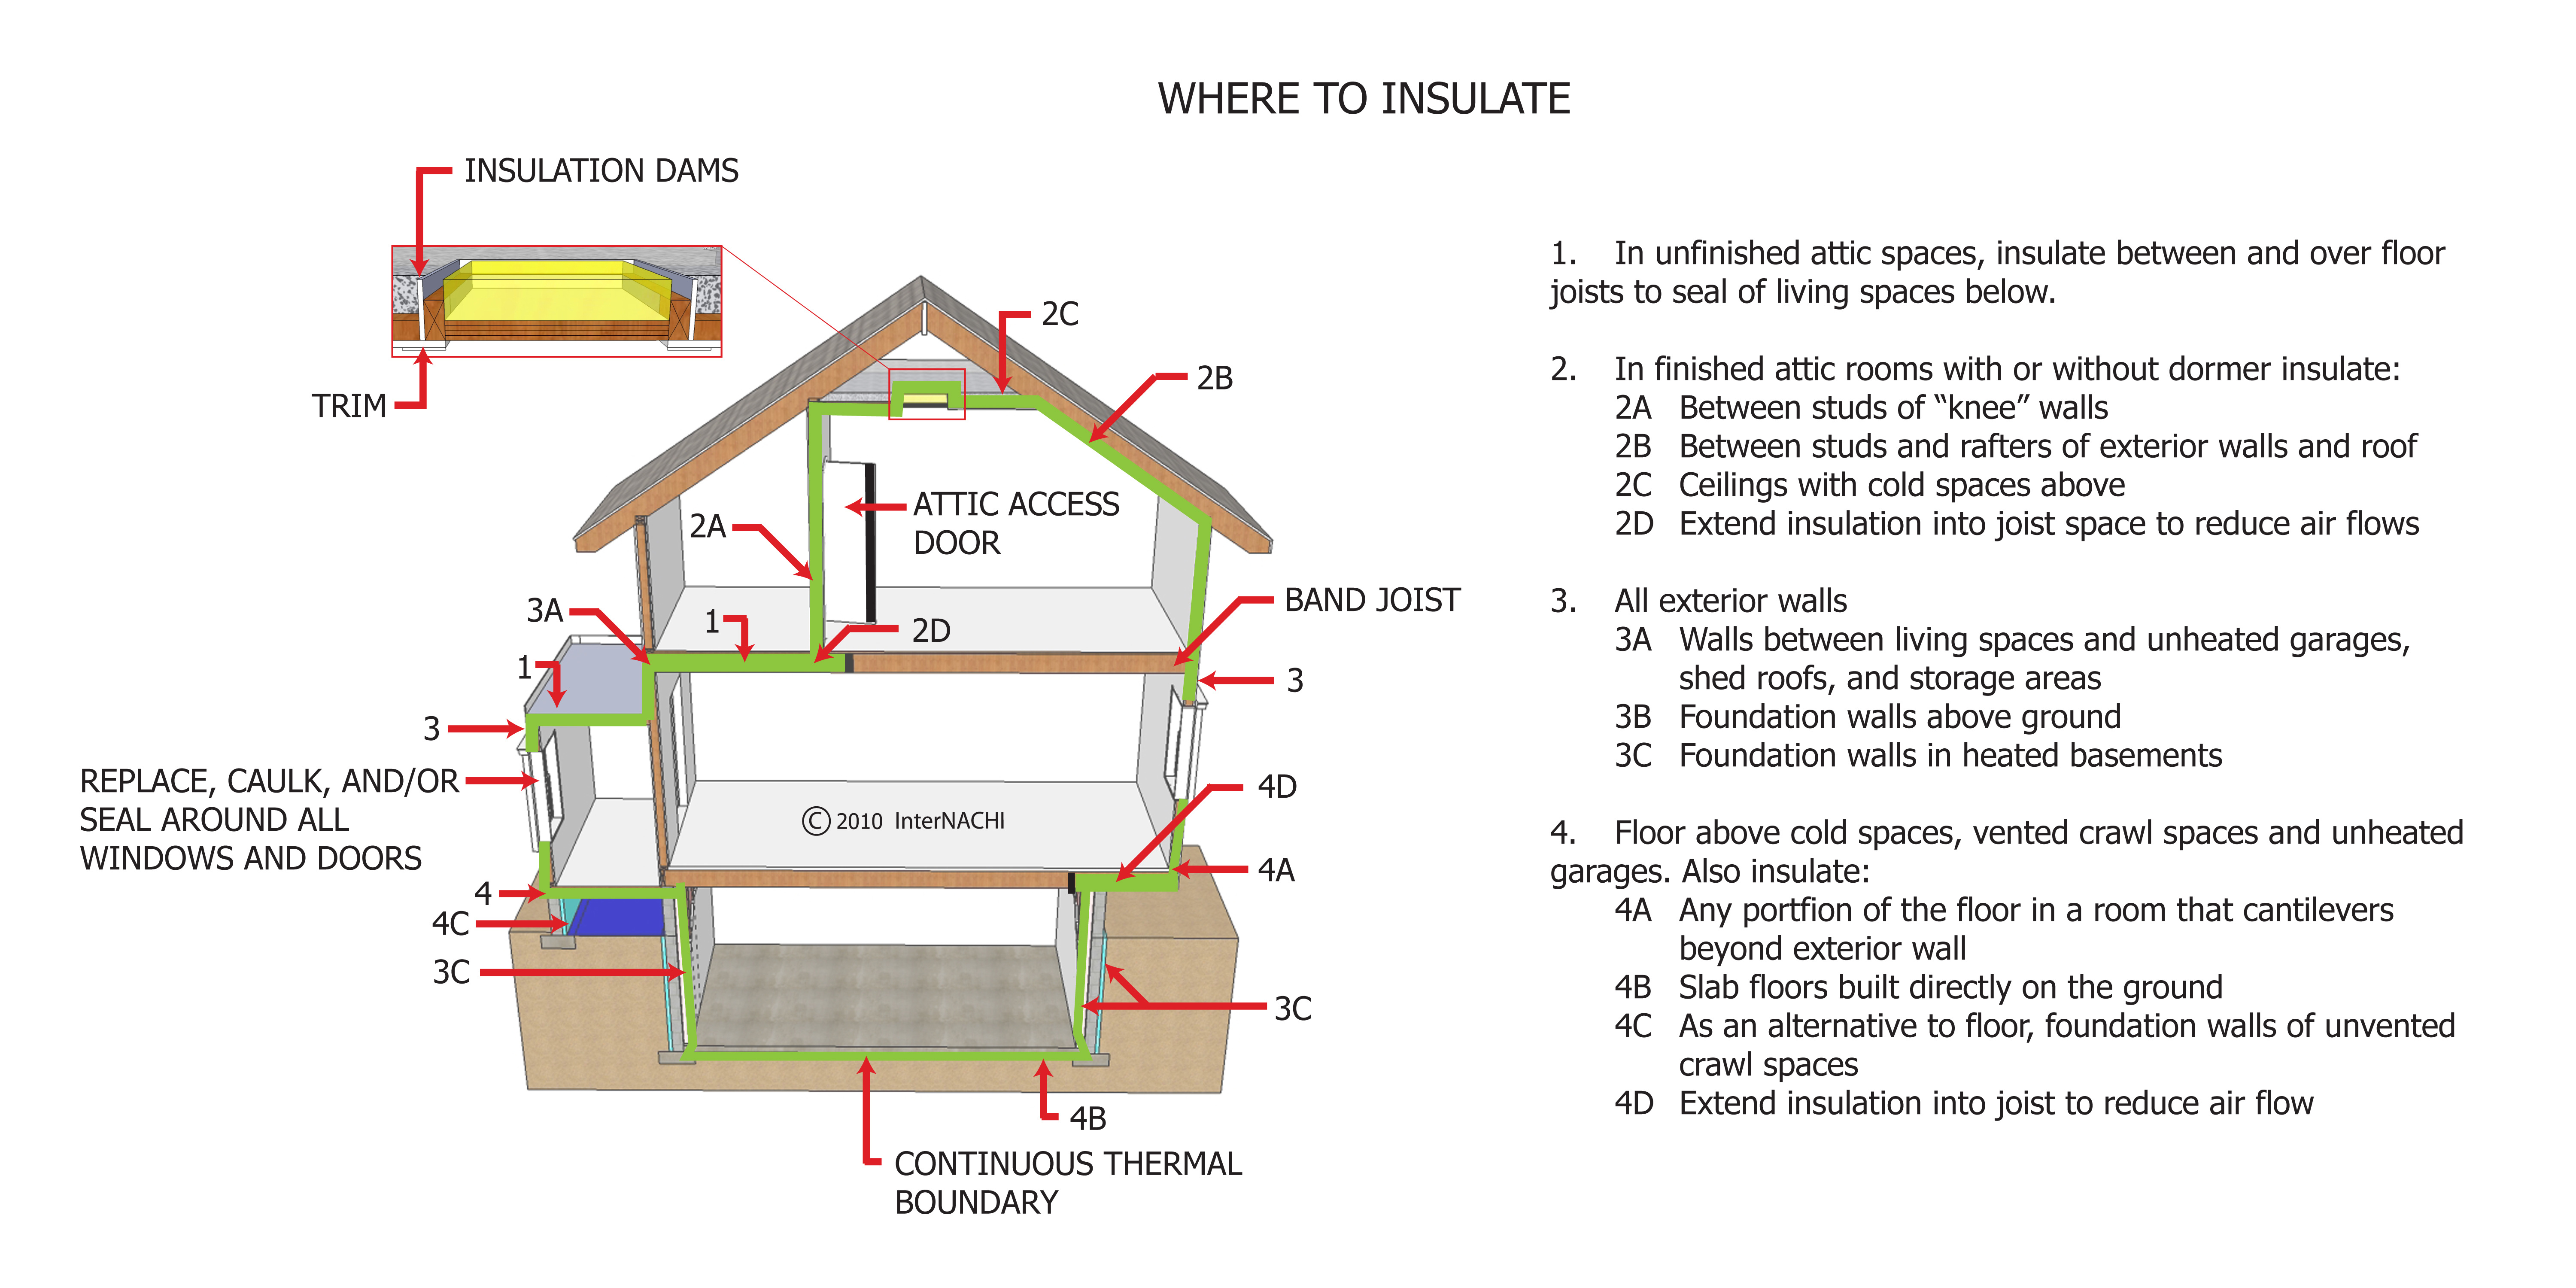 Where to insulate.